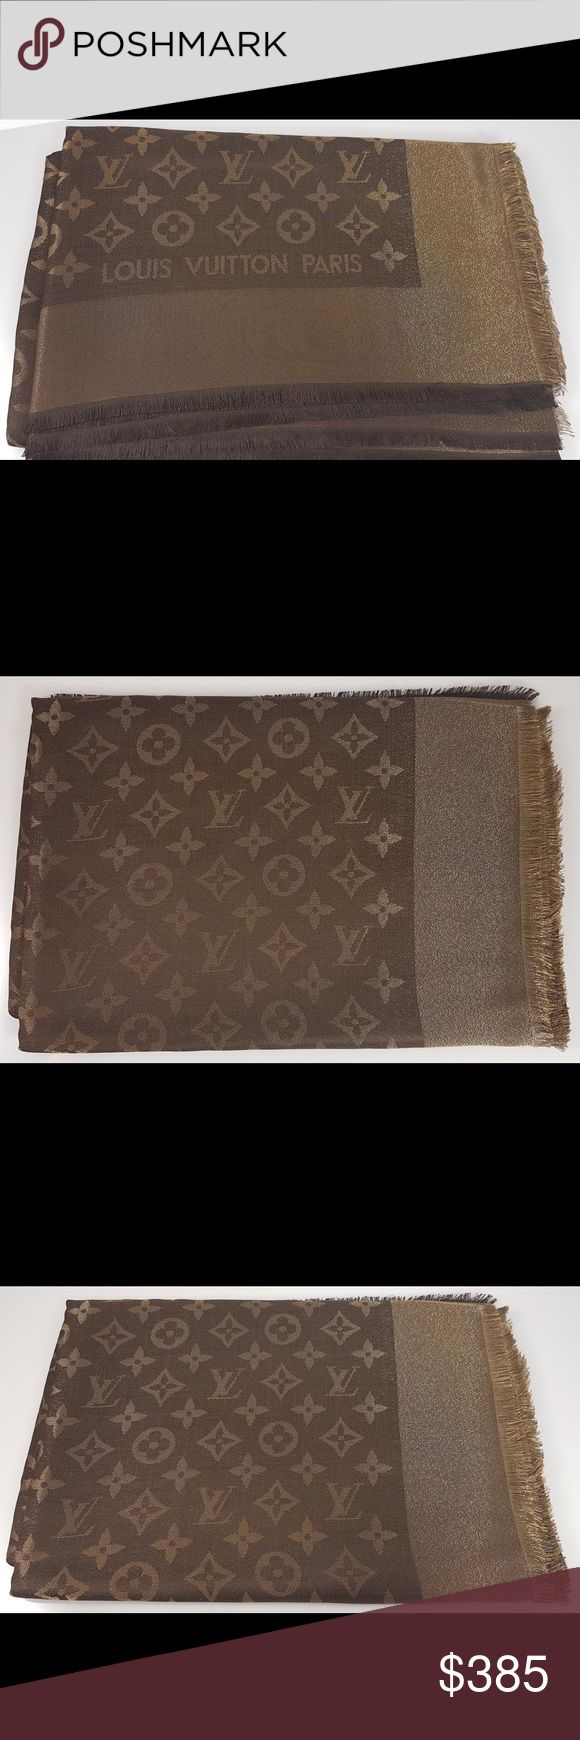 Louis Vuitton Stole Monogram Brown Lurex Louis Vuitton Stole Monogram Brown Lurex. Made in Italy. 47% silk, 26% viscose, 17% wool and 10% polyester. Louis Vuitton Accessories Scarves & Wraps